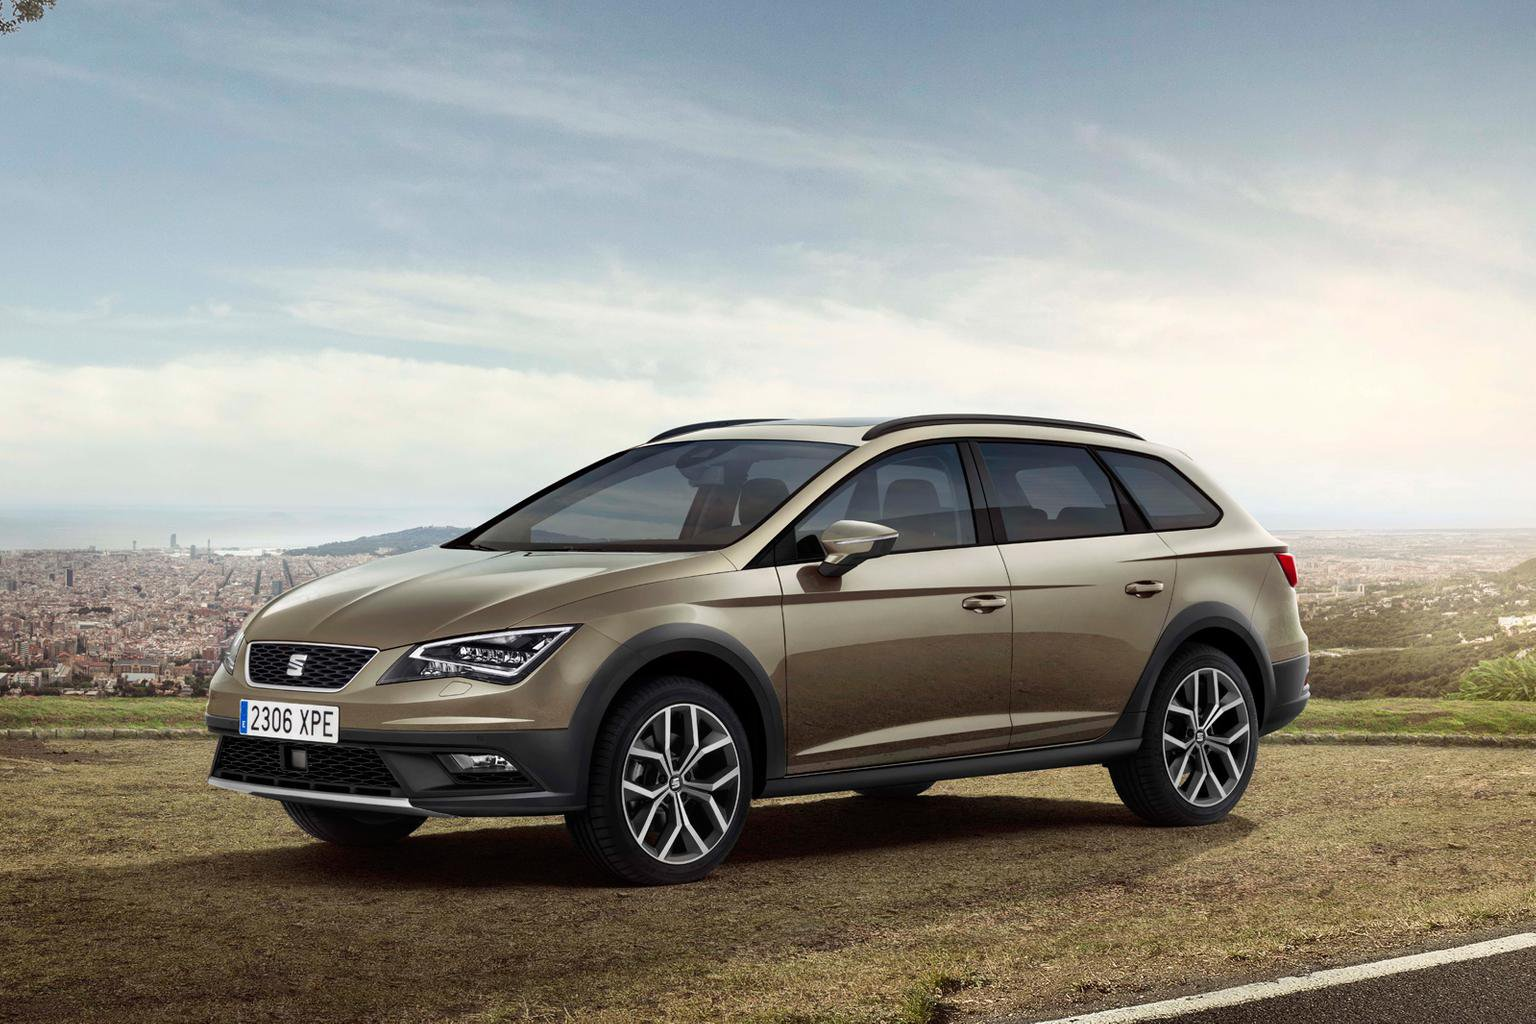 Seat Leon X-Perience prices start at 24,385